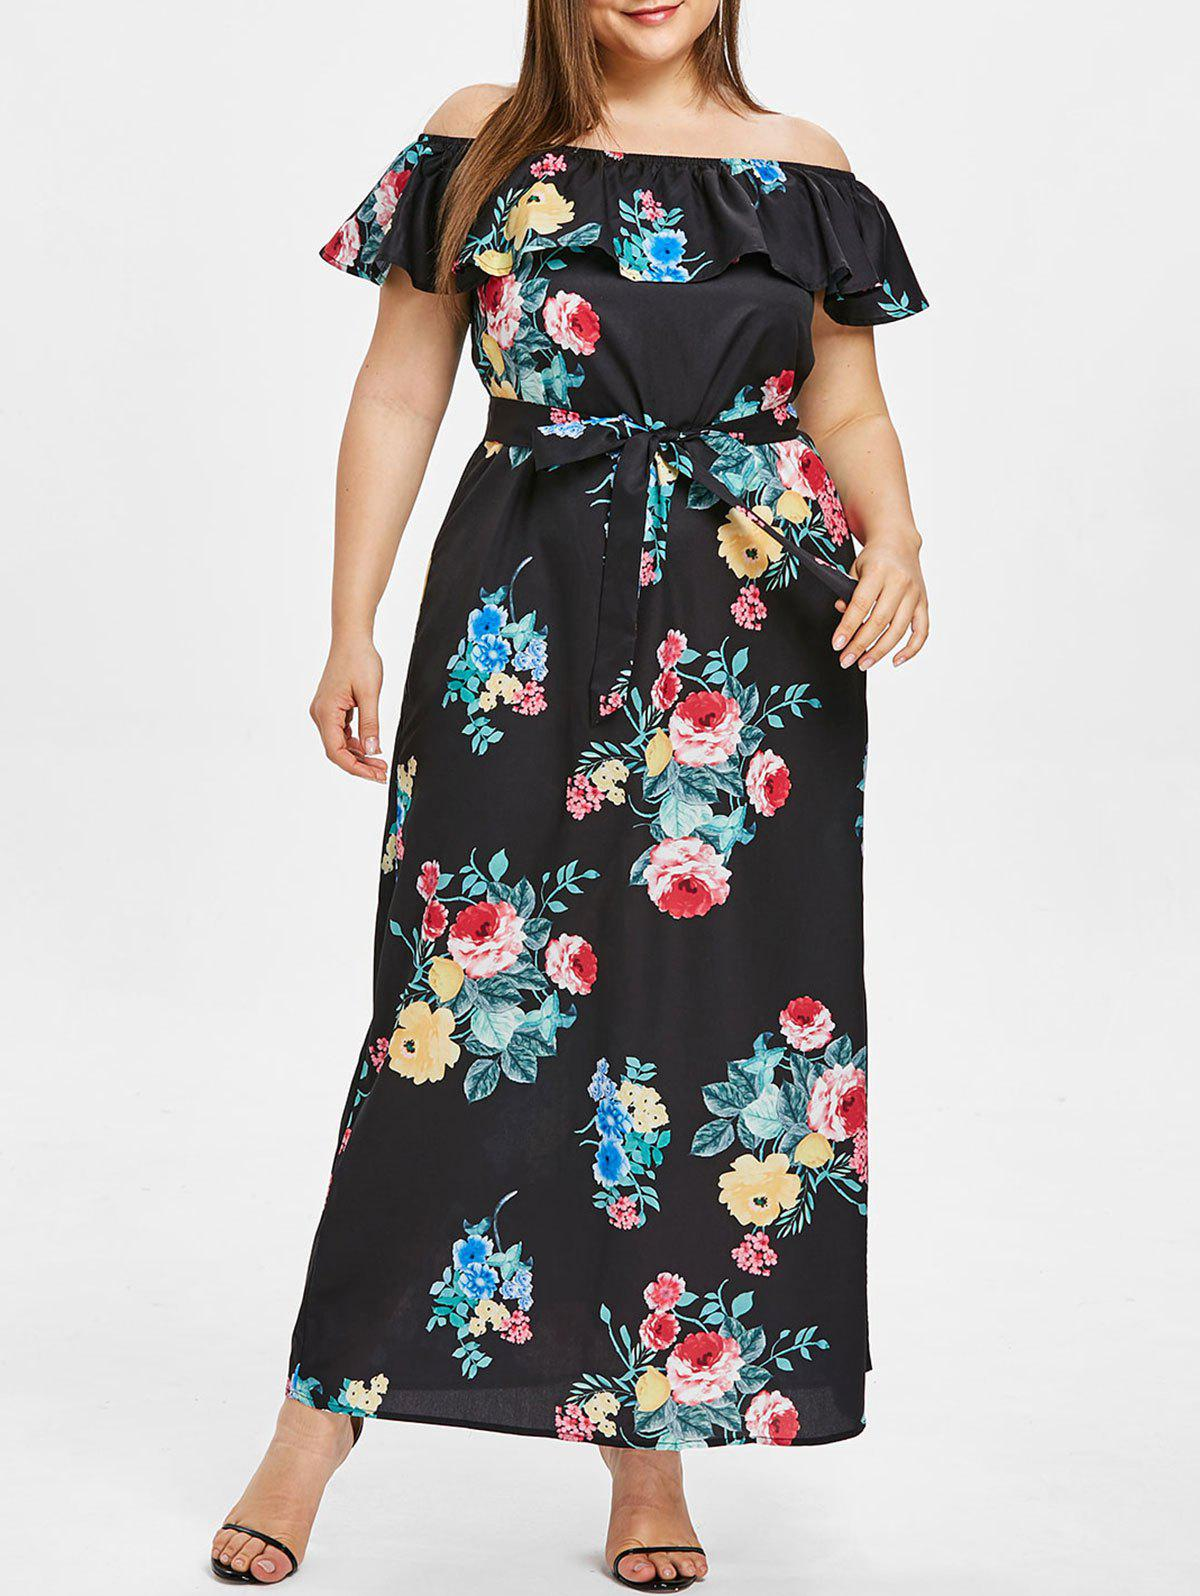 dbc47006eadce 41% OFF] Plus Size Off Shoulder Printed Belted Long Dress | Rosegal